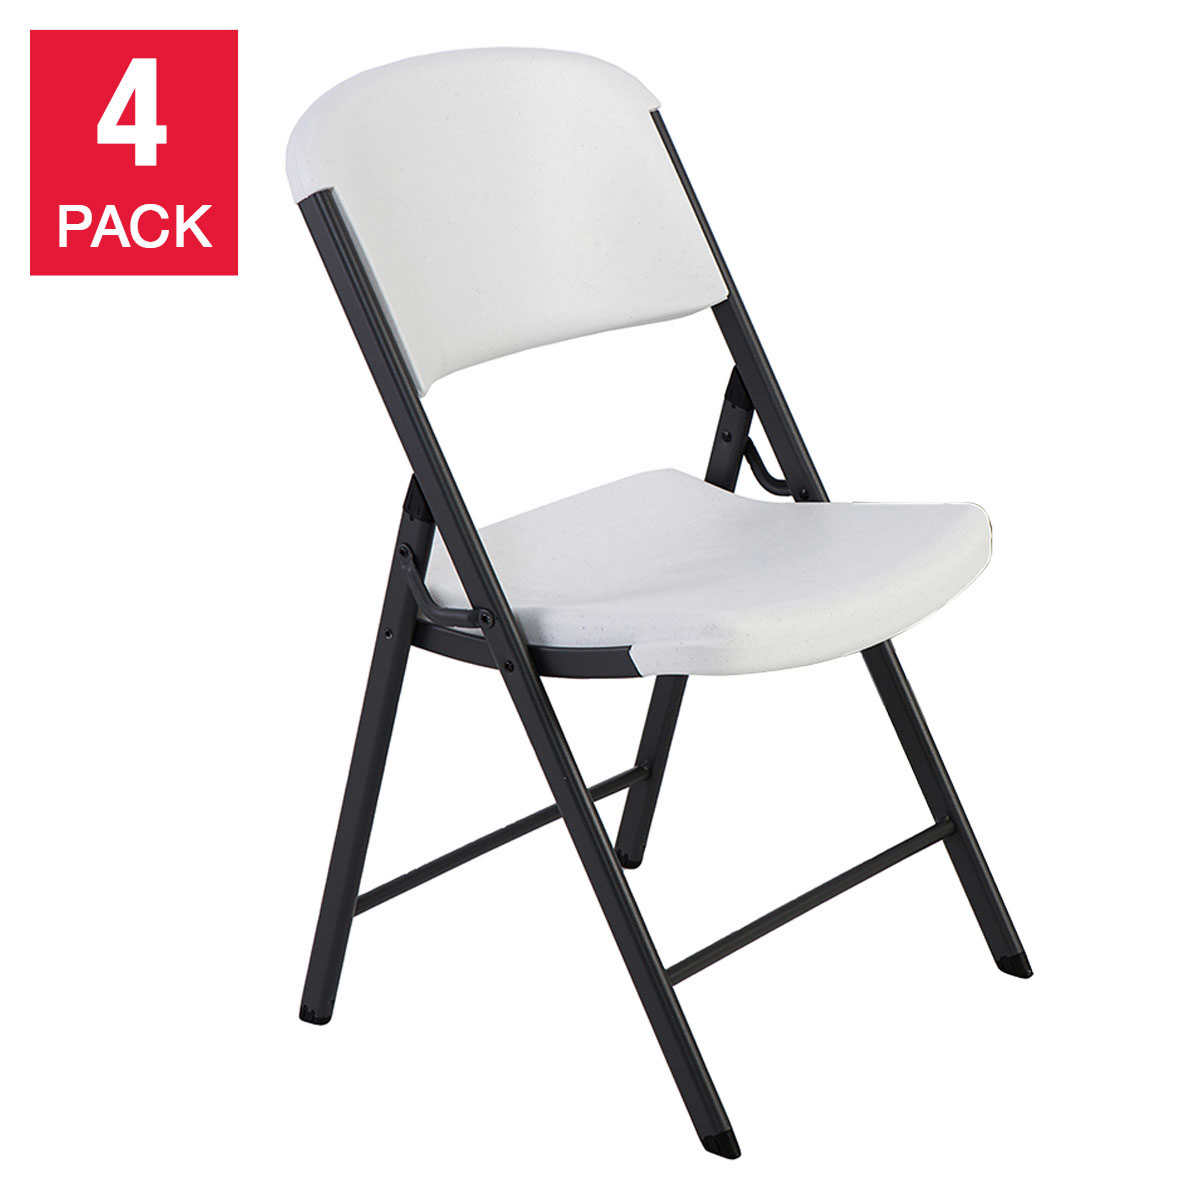 heavy duty steel small decorative indooroutdoor firewood.htm lifetime folding chairs  white or beige  4 pack  lifetime folding chairs  white or beige